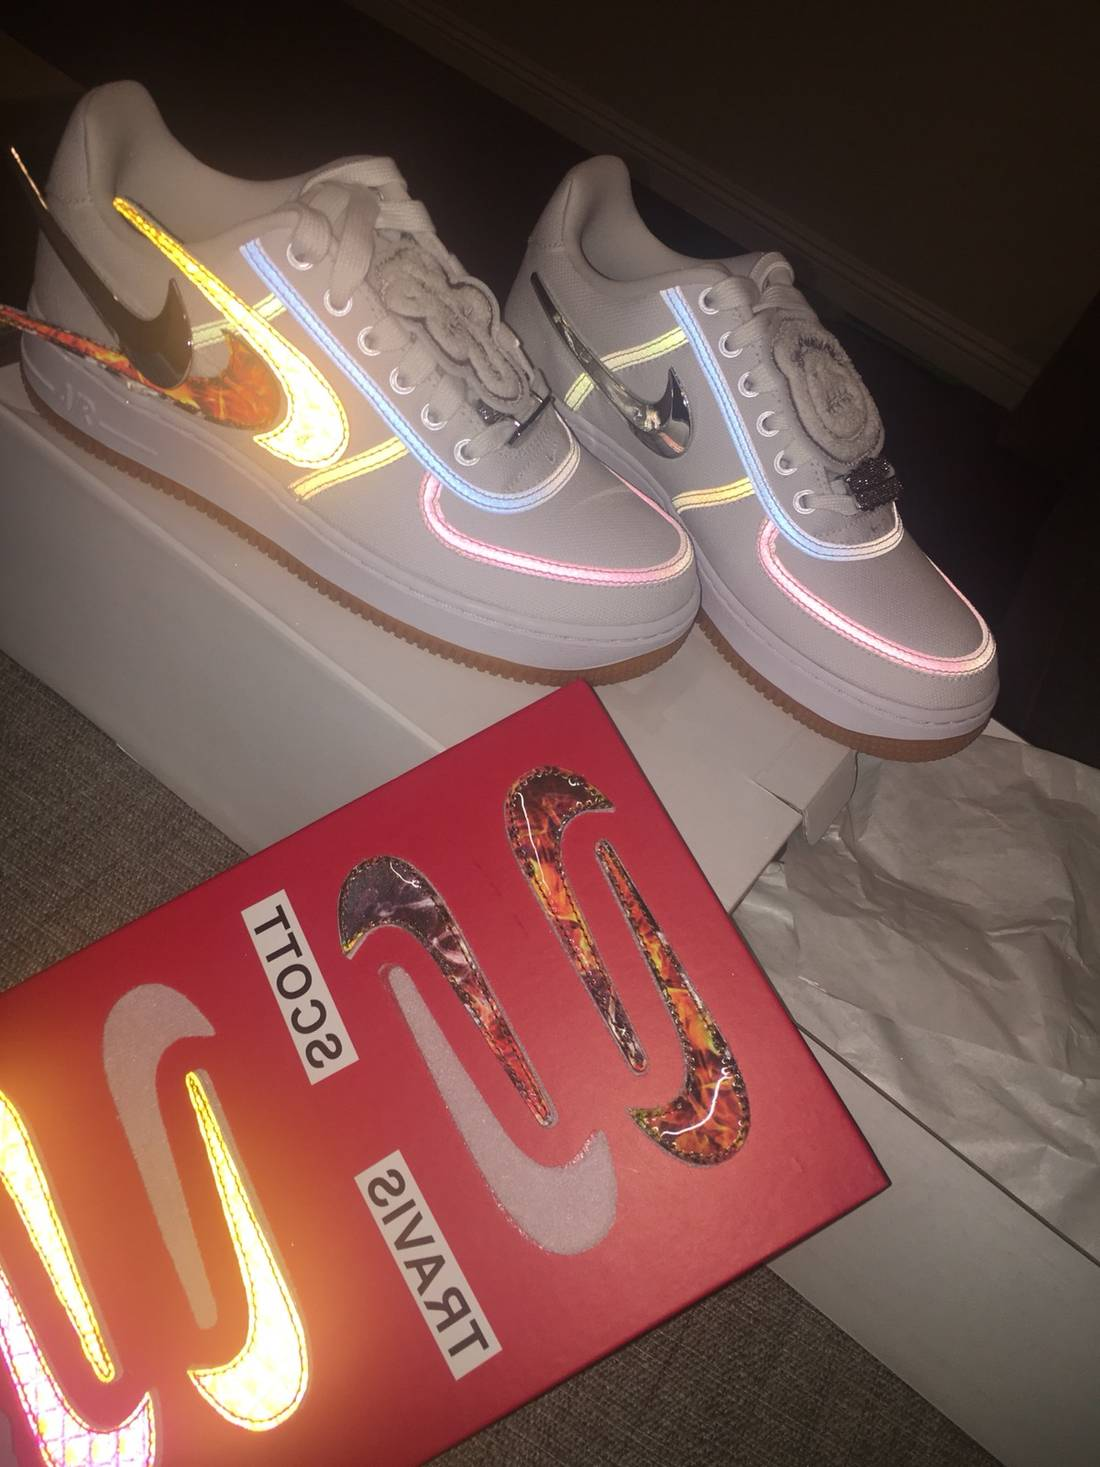 check out c2fd4 19004 Nike Air Force 1 Travis Scott Size US 6 EU 39 - 2 ...